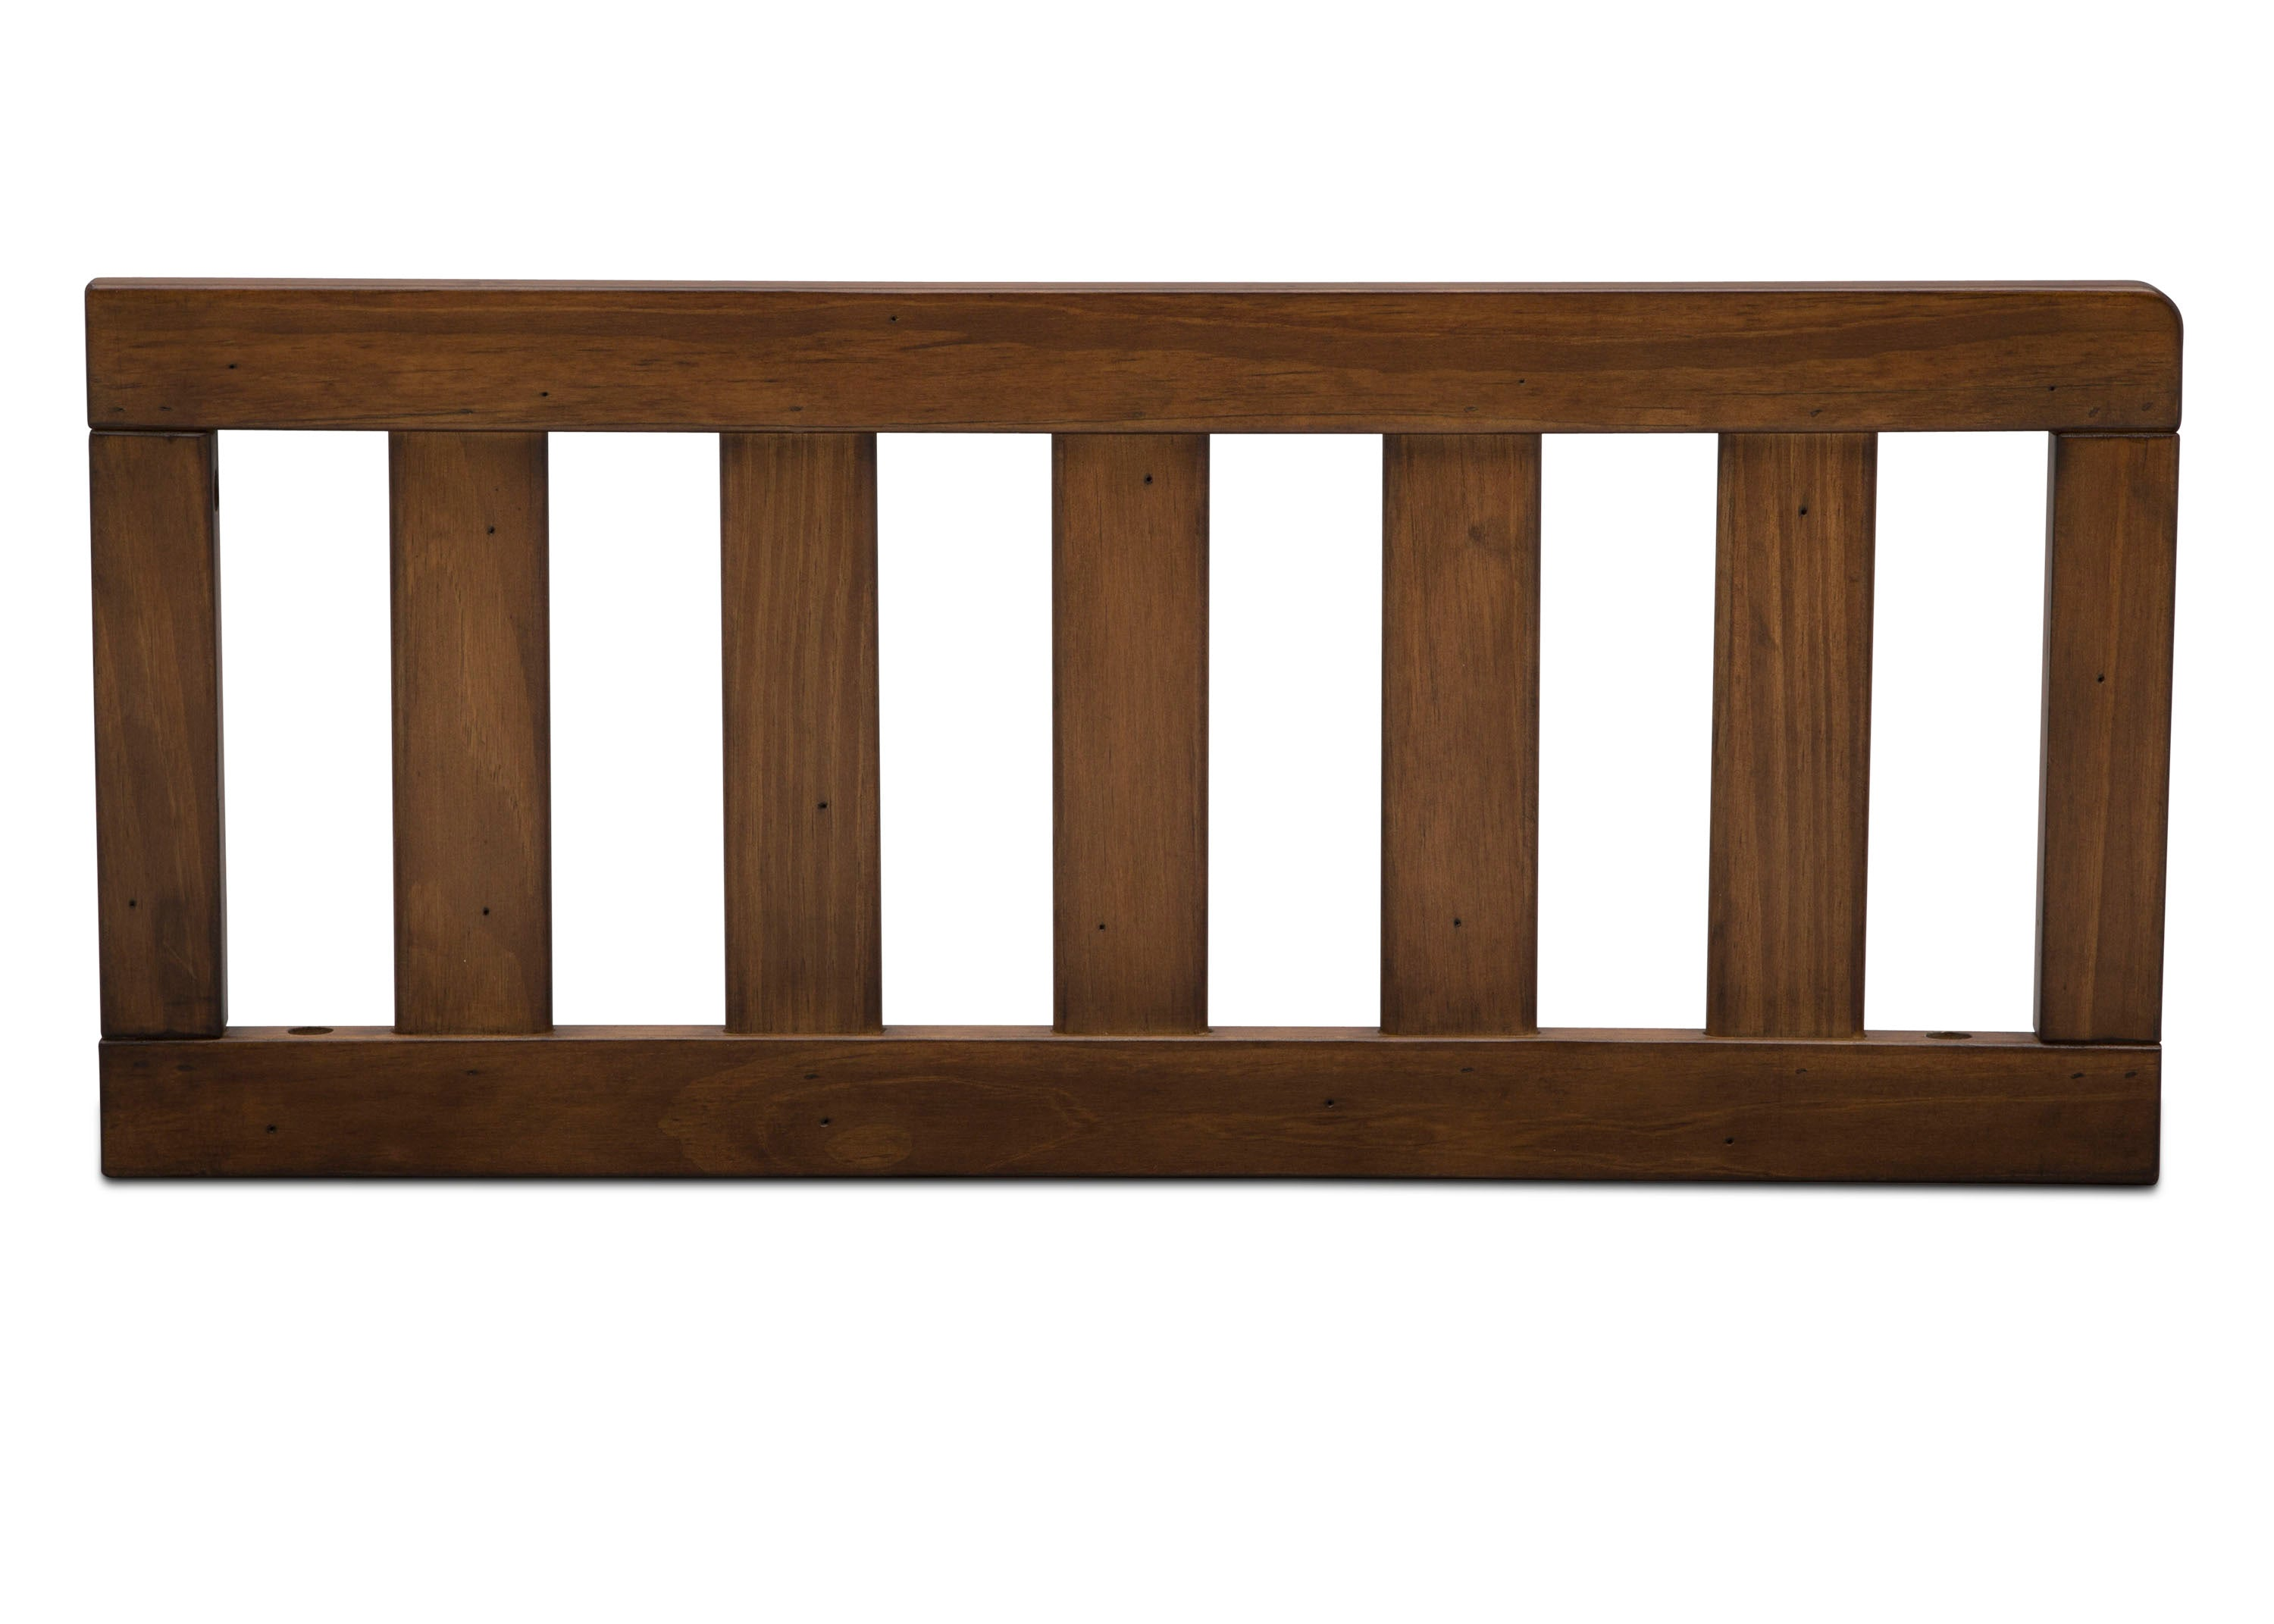 Delta Children Antique Chestnut (2100) Toddler Guardrail (180130) Front Silo, c1c for Bedford 4-in-1 Convertible Crib